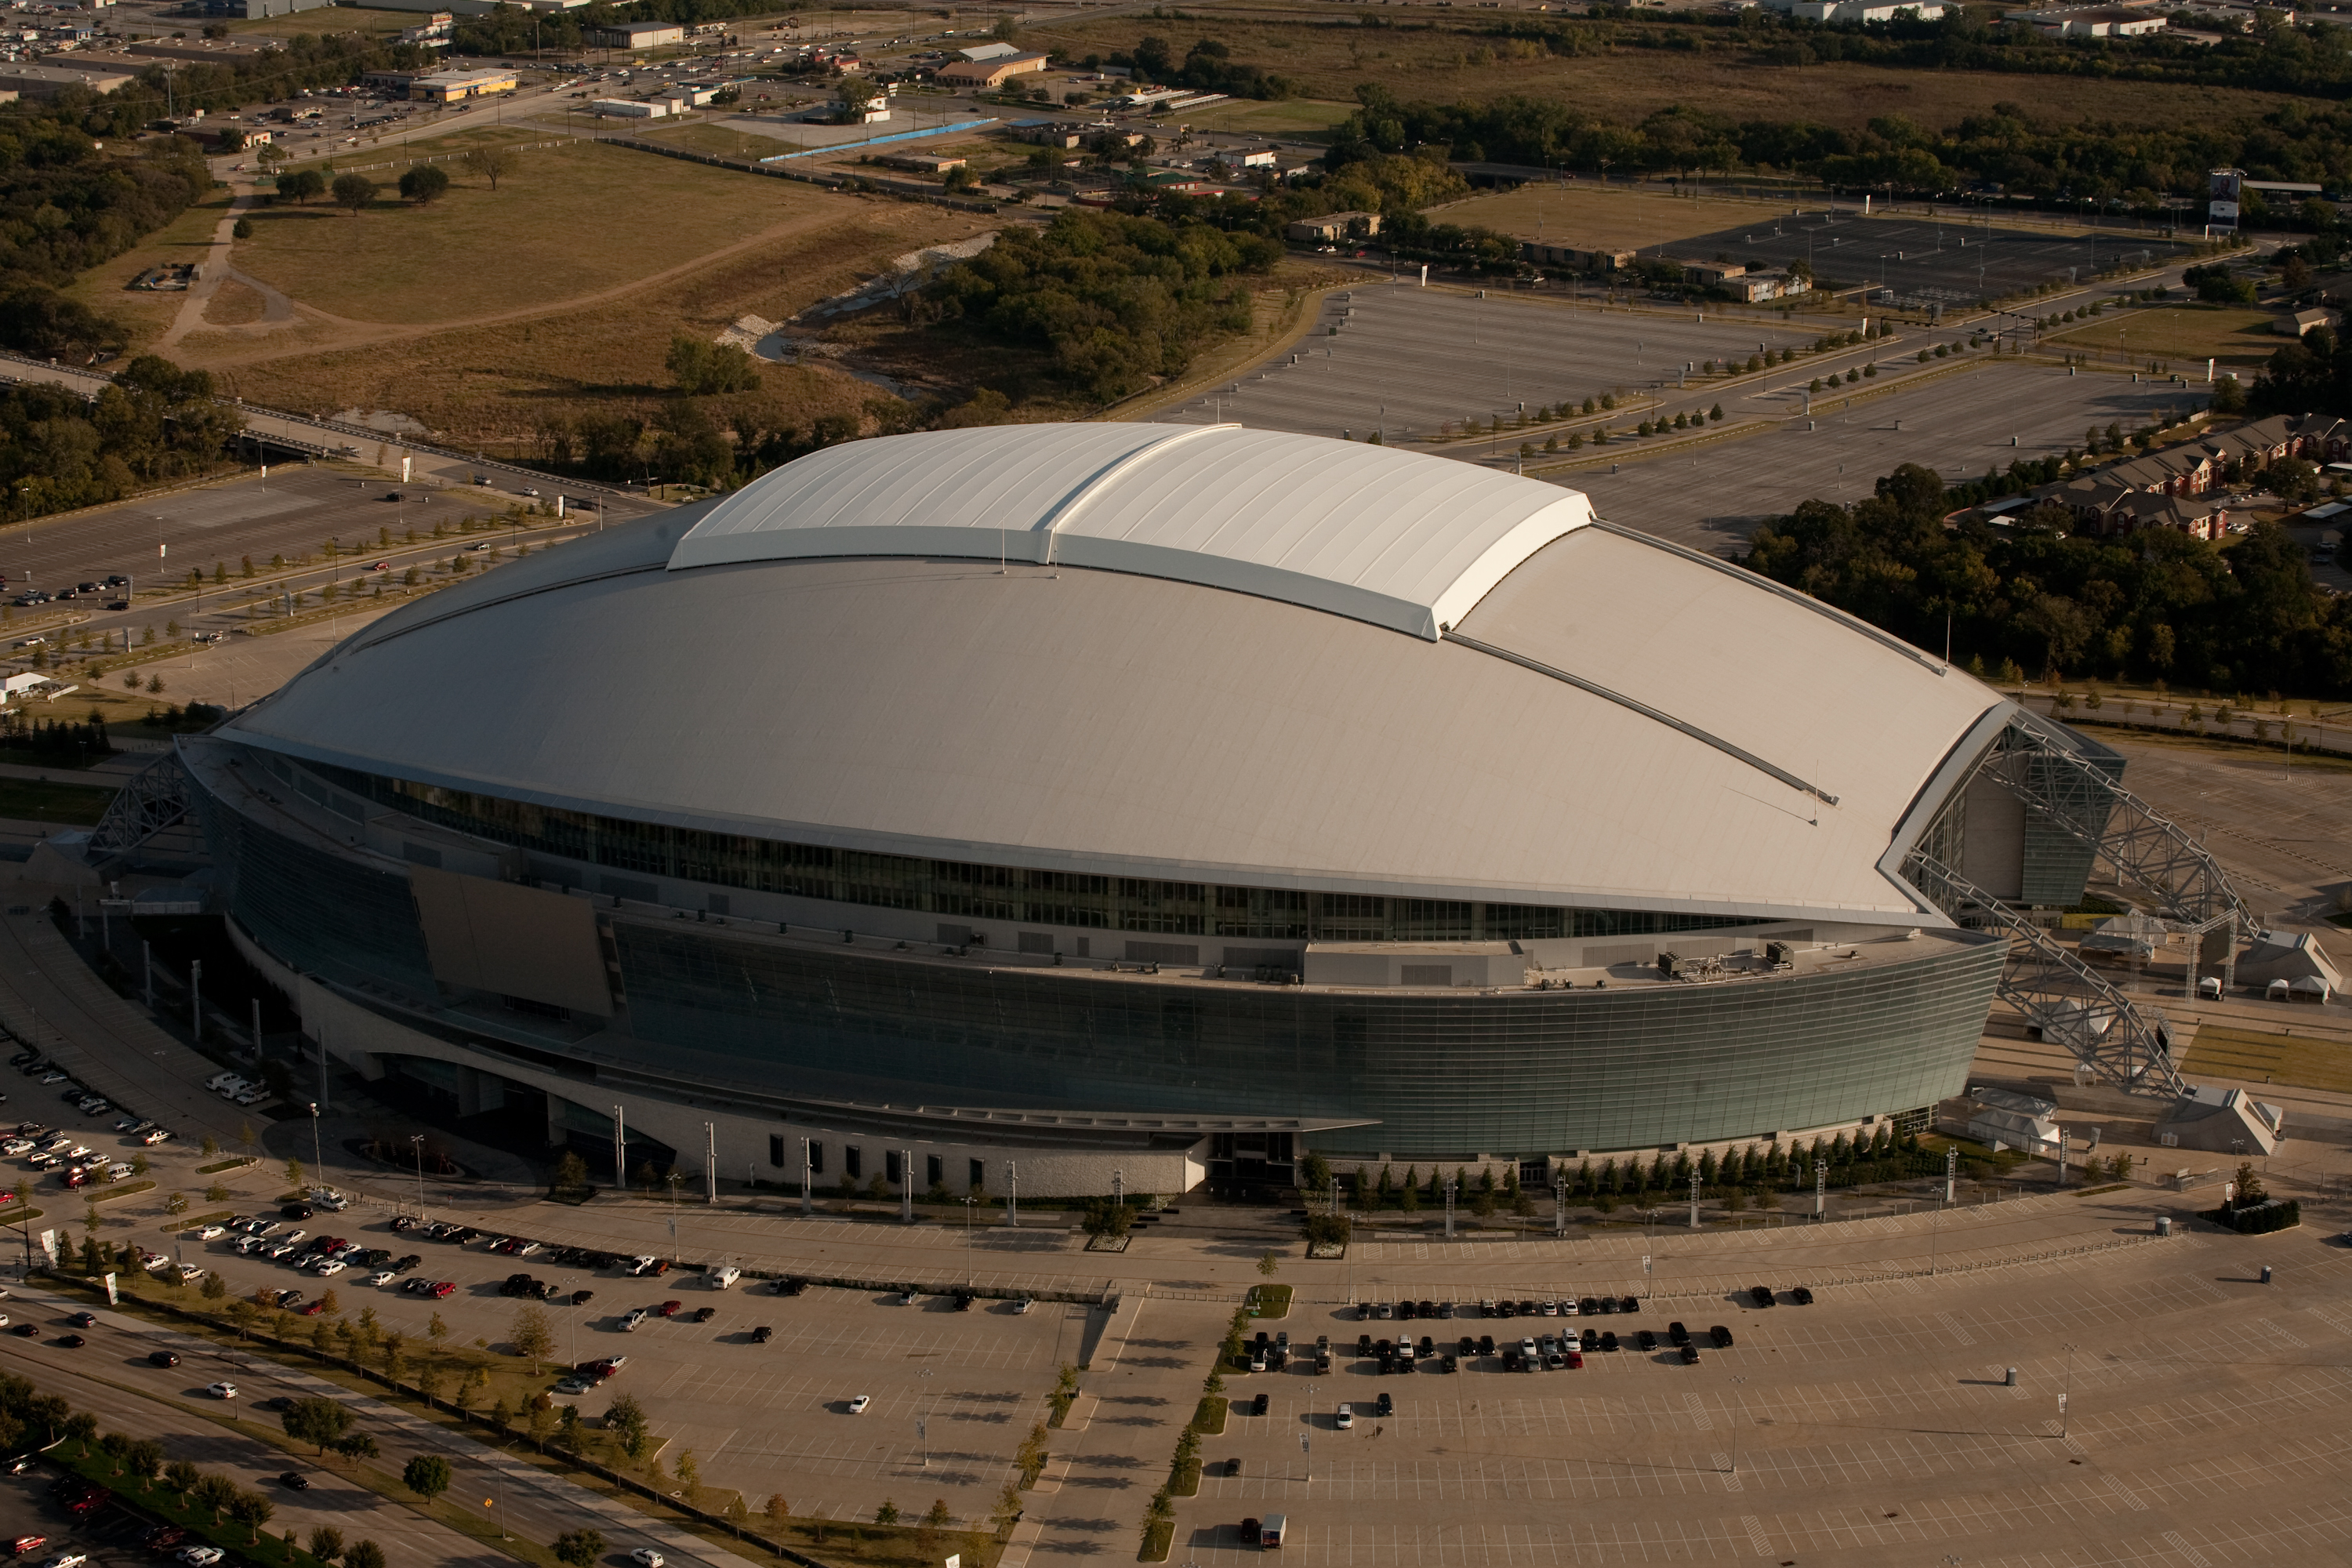 Opened in 2009, the Cowboys Stadium in Arlington, Texas is the home of the Dallas Cowboys. Featuring a retractable roof, the venue seats 80,000 and is the fourth largest stadium in the NFL. The Stadium hosted Super Bowl XLV between the Pittsburgh Steelers and the Green Bay Packers on Sunday, February 6, 2011.